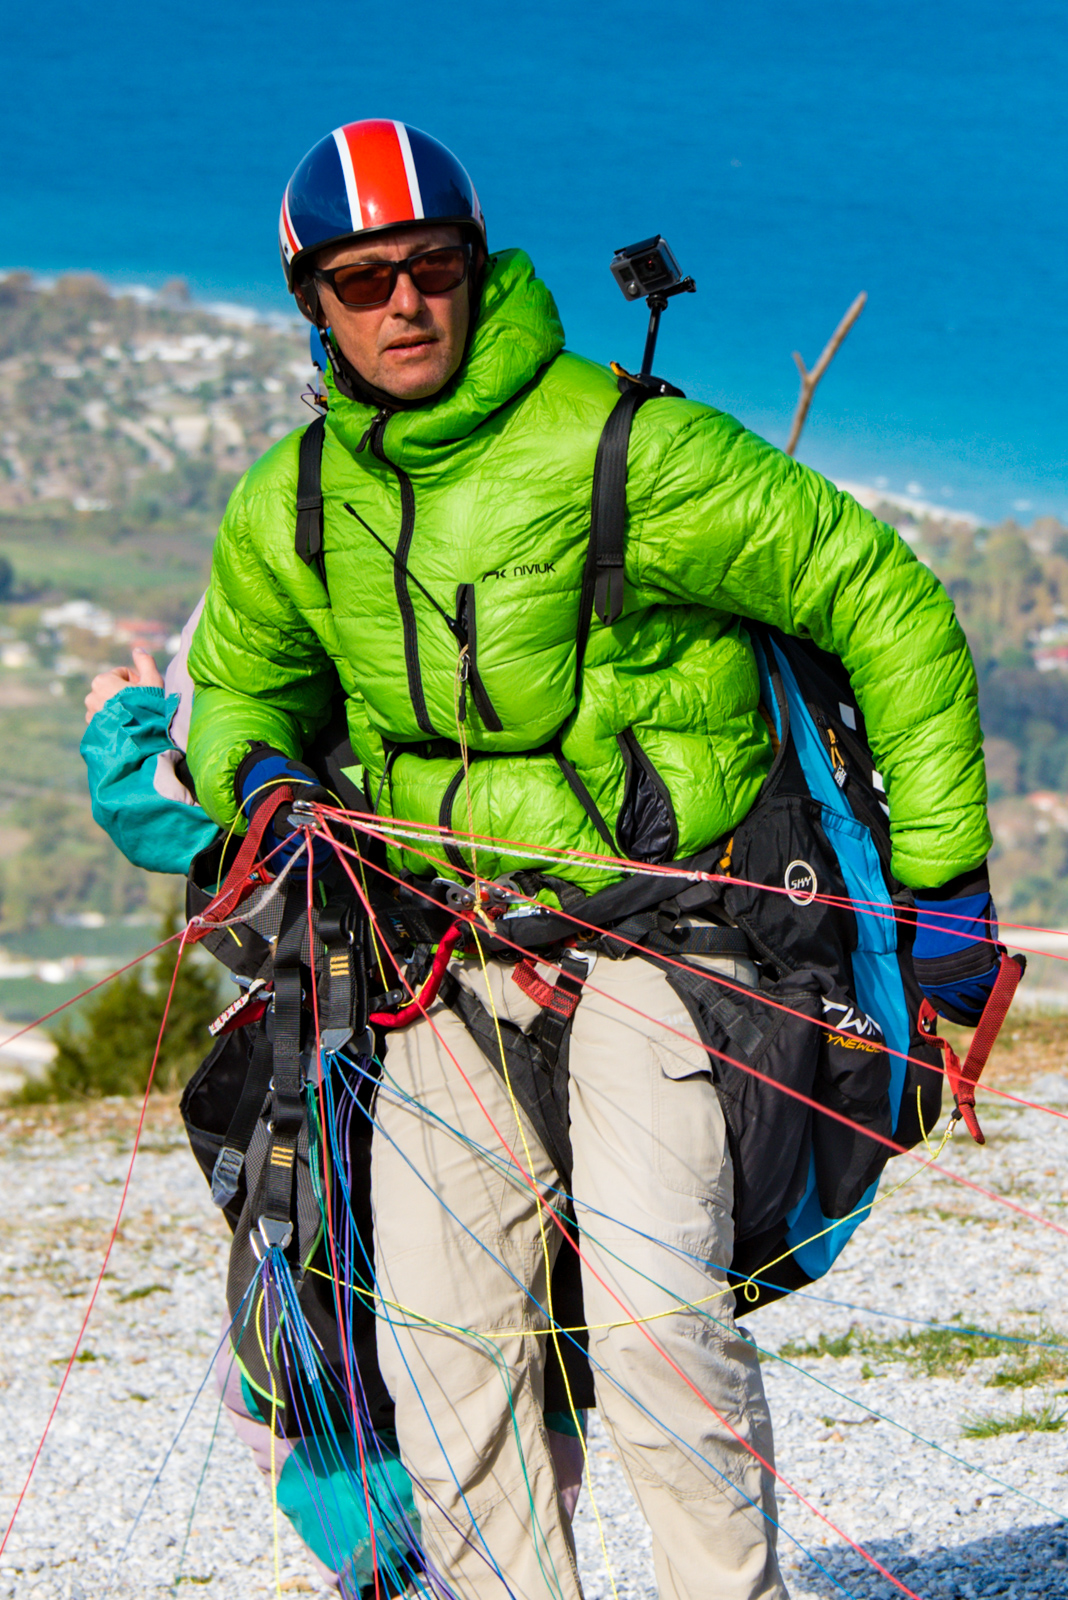 Paragliding Instructor from Mount Olympus.